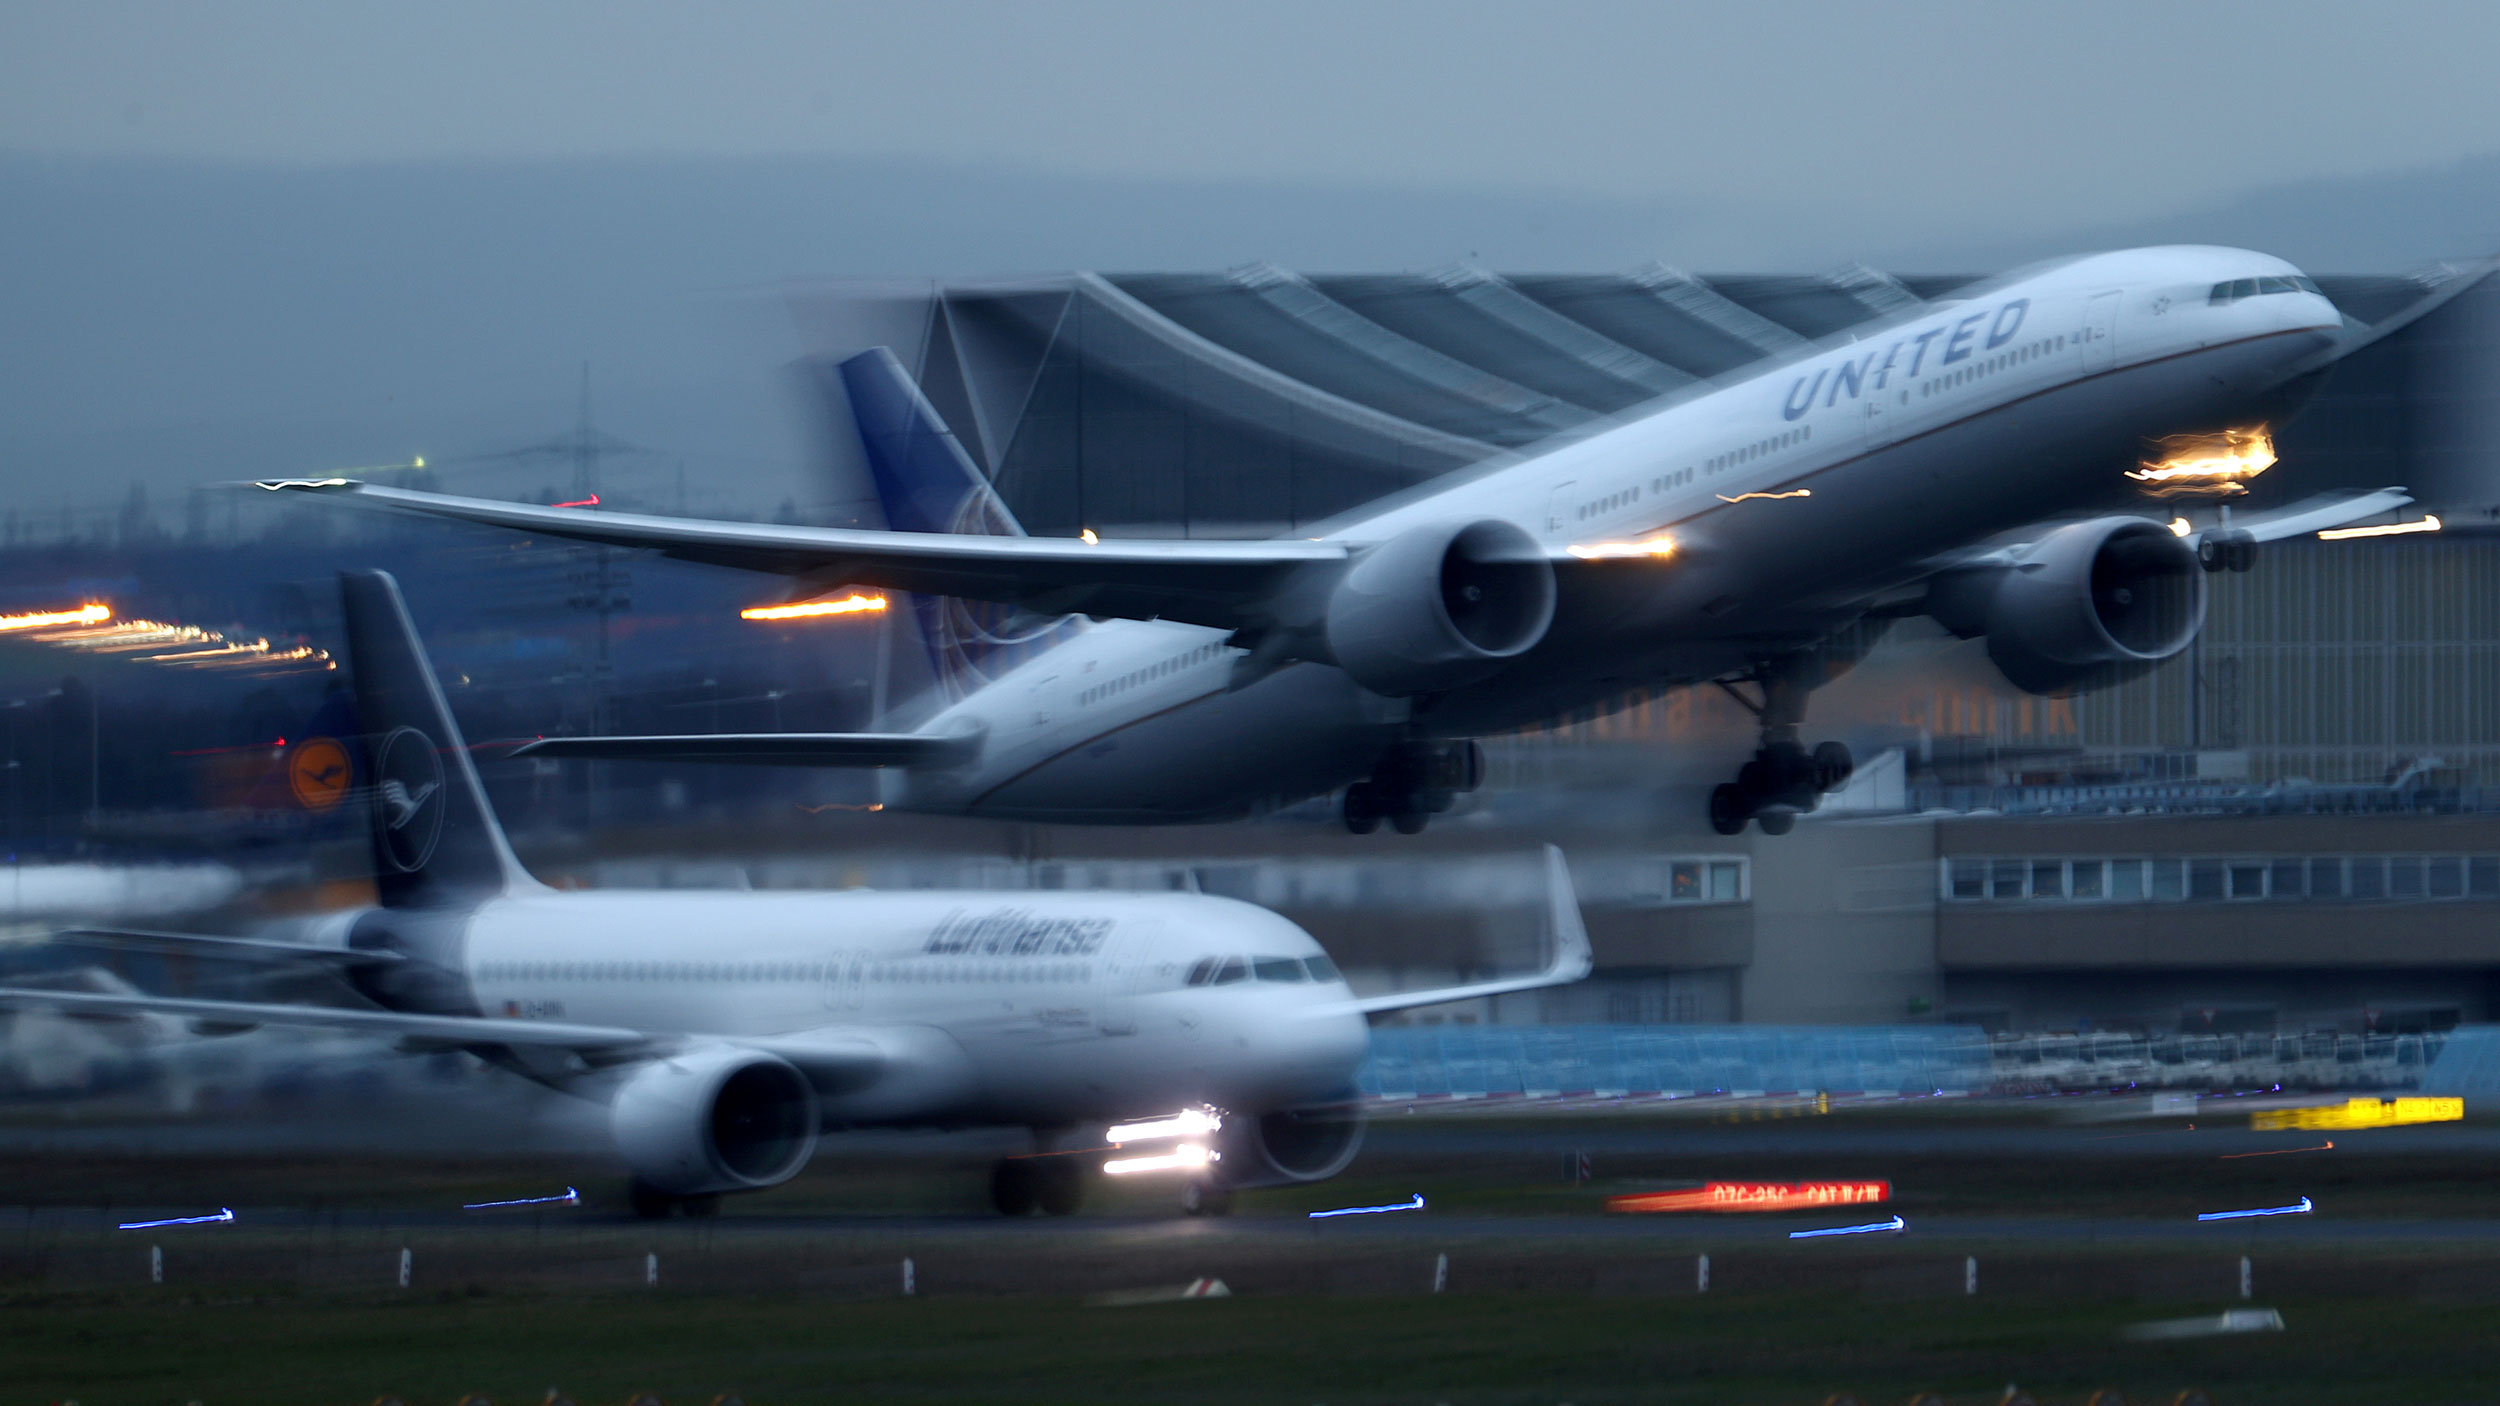 Airplanes of German airline Lufthansa and US carrier United Airlines land and take off at Frankfurt Airport, Germany March 2, 2020.